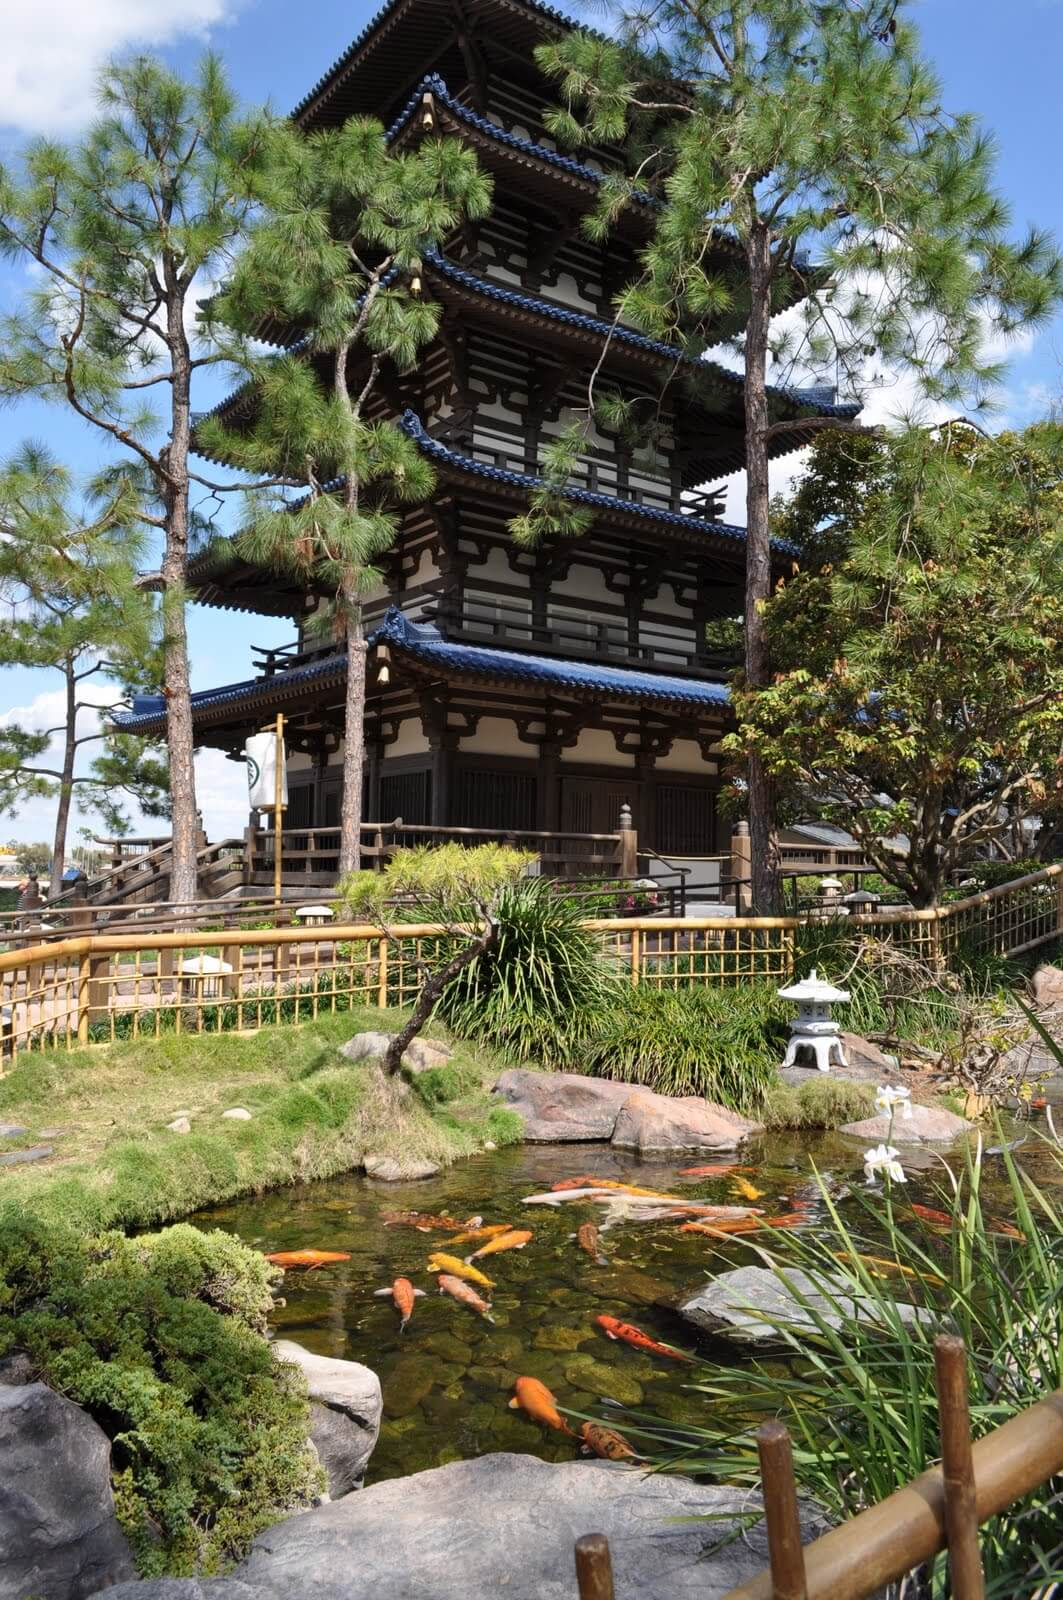 Japan Pavilion at Epcot